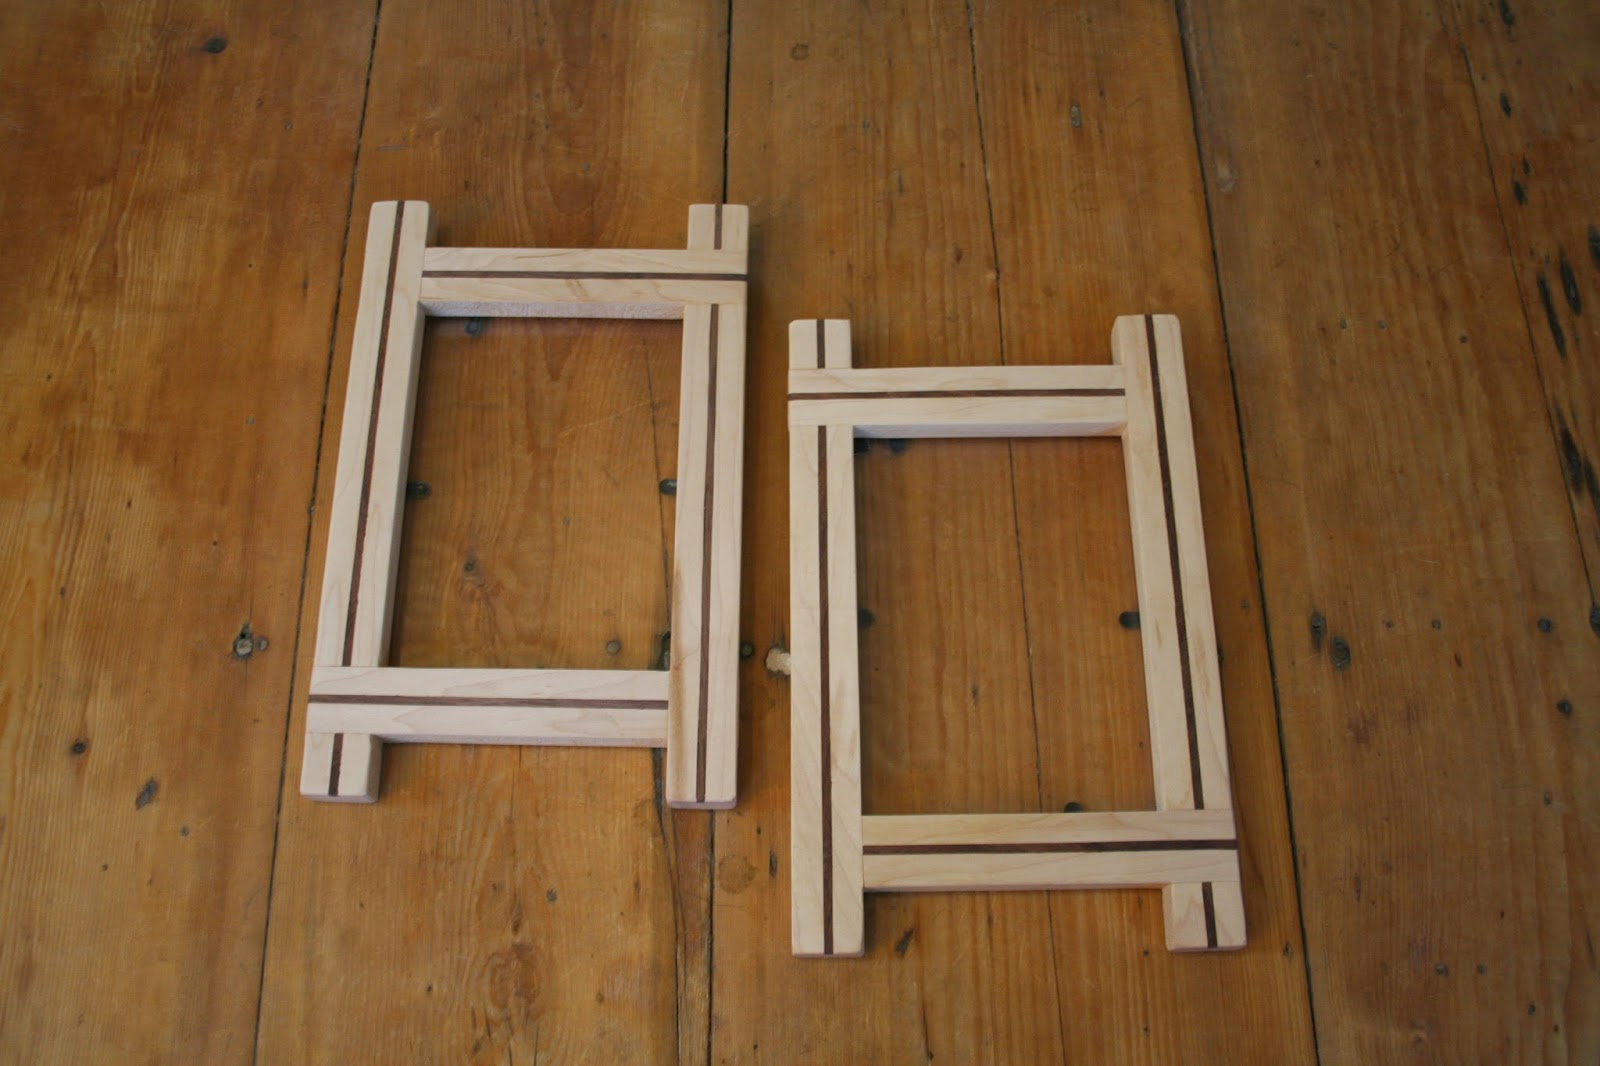 Sugar maple picture frames vaughan woodworks sugar maple picture frames jeuxipadfo Image collections